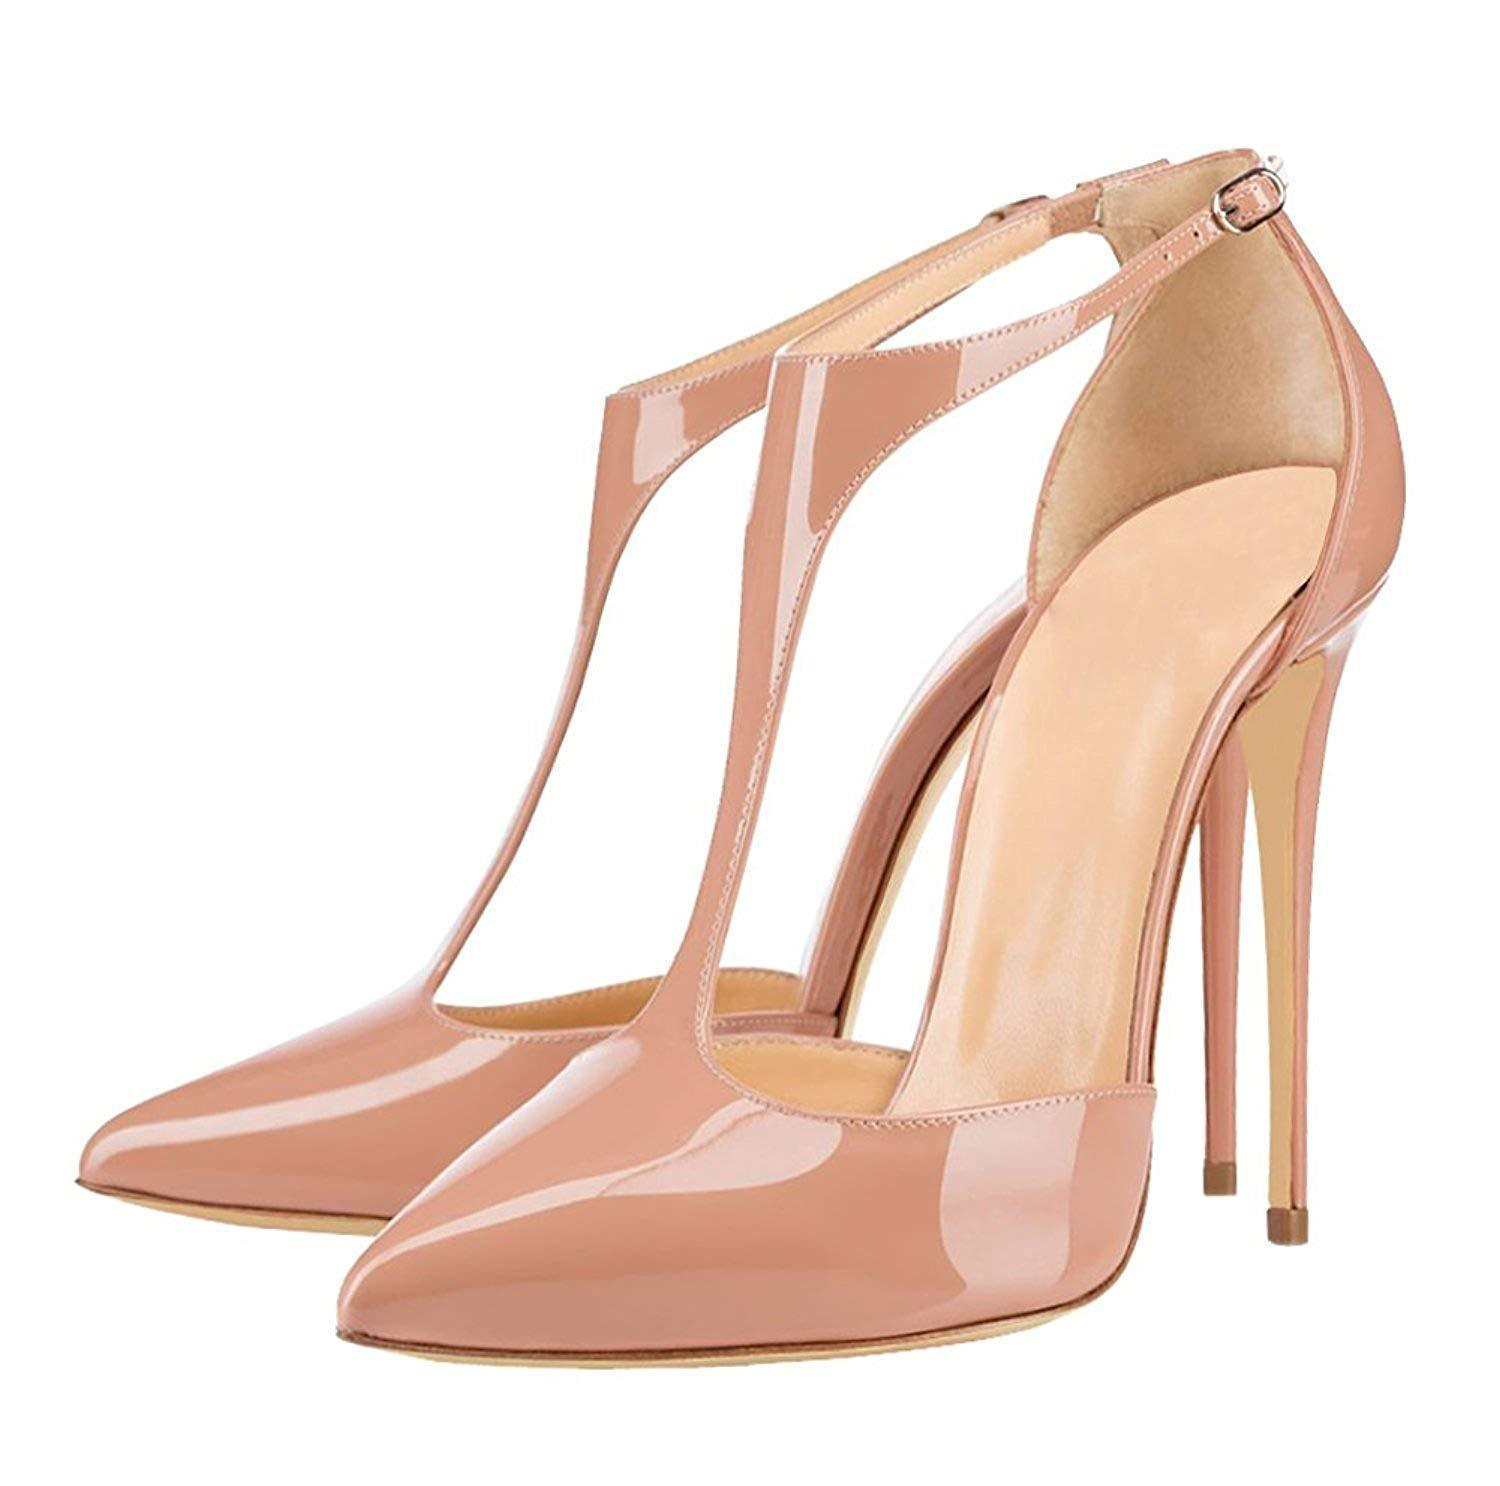 Fashion2019 Single Fashion Latest Shoe Sharp Golden Rome Fine With Women's Will Code High-heeled Shoes